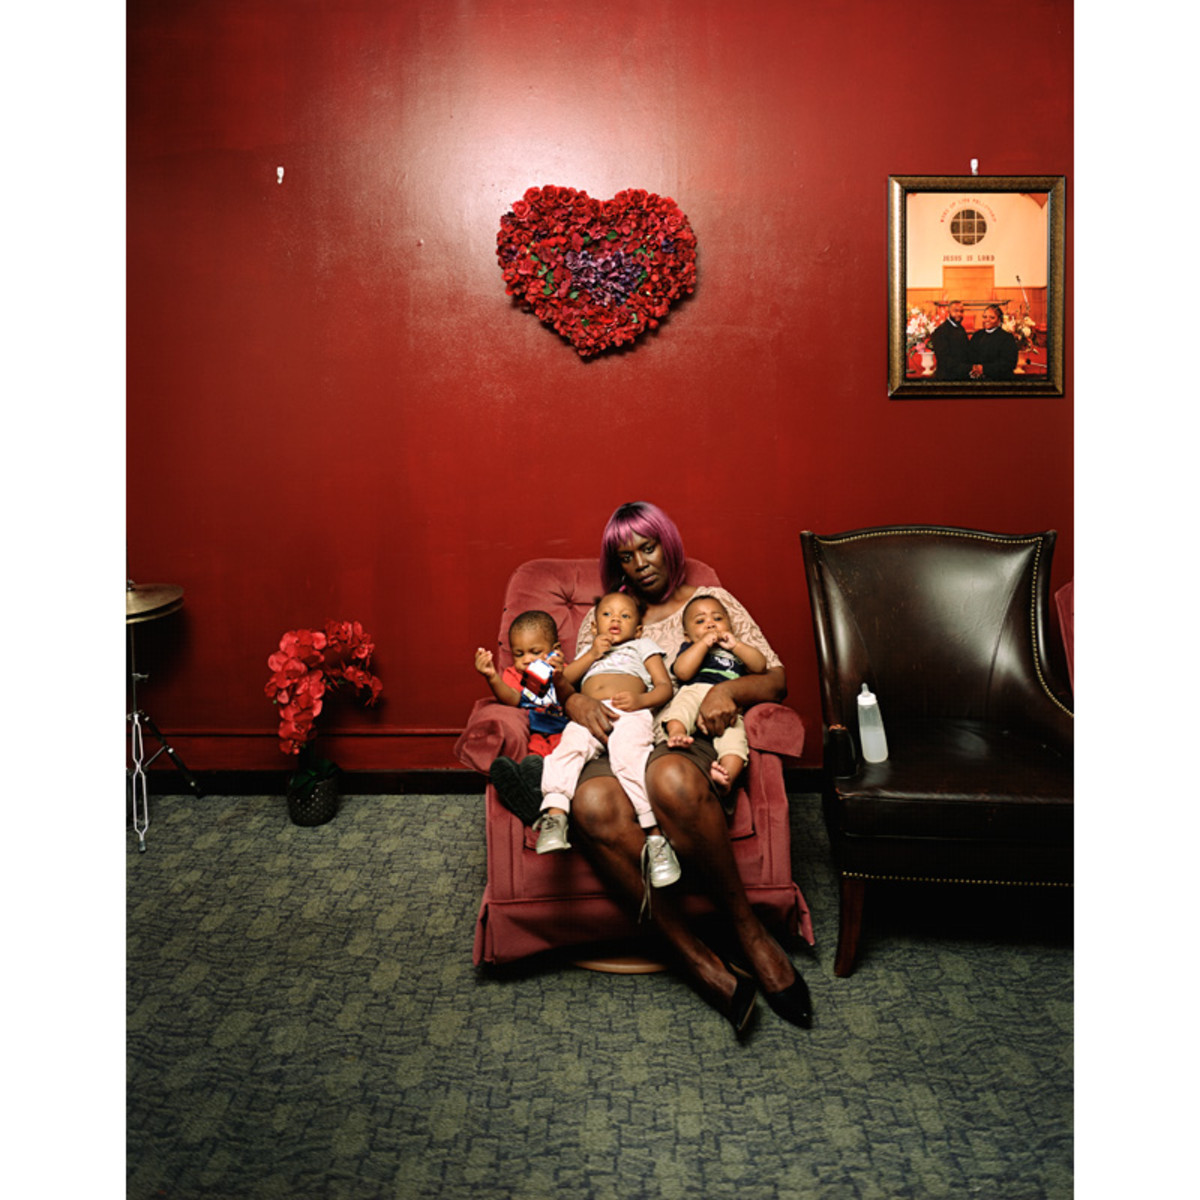 Deana Lawson, Young Grandmother, 2019 ©